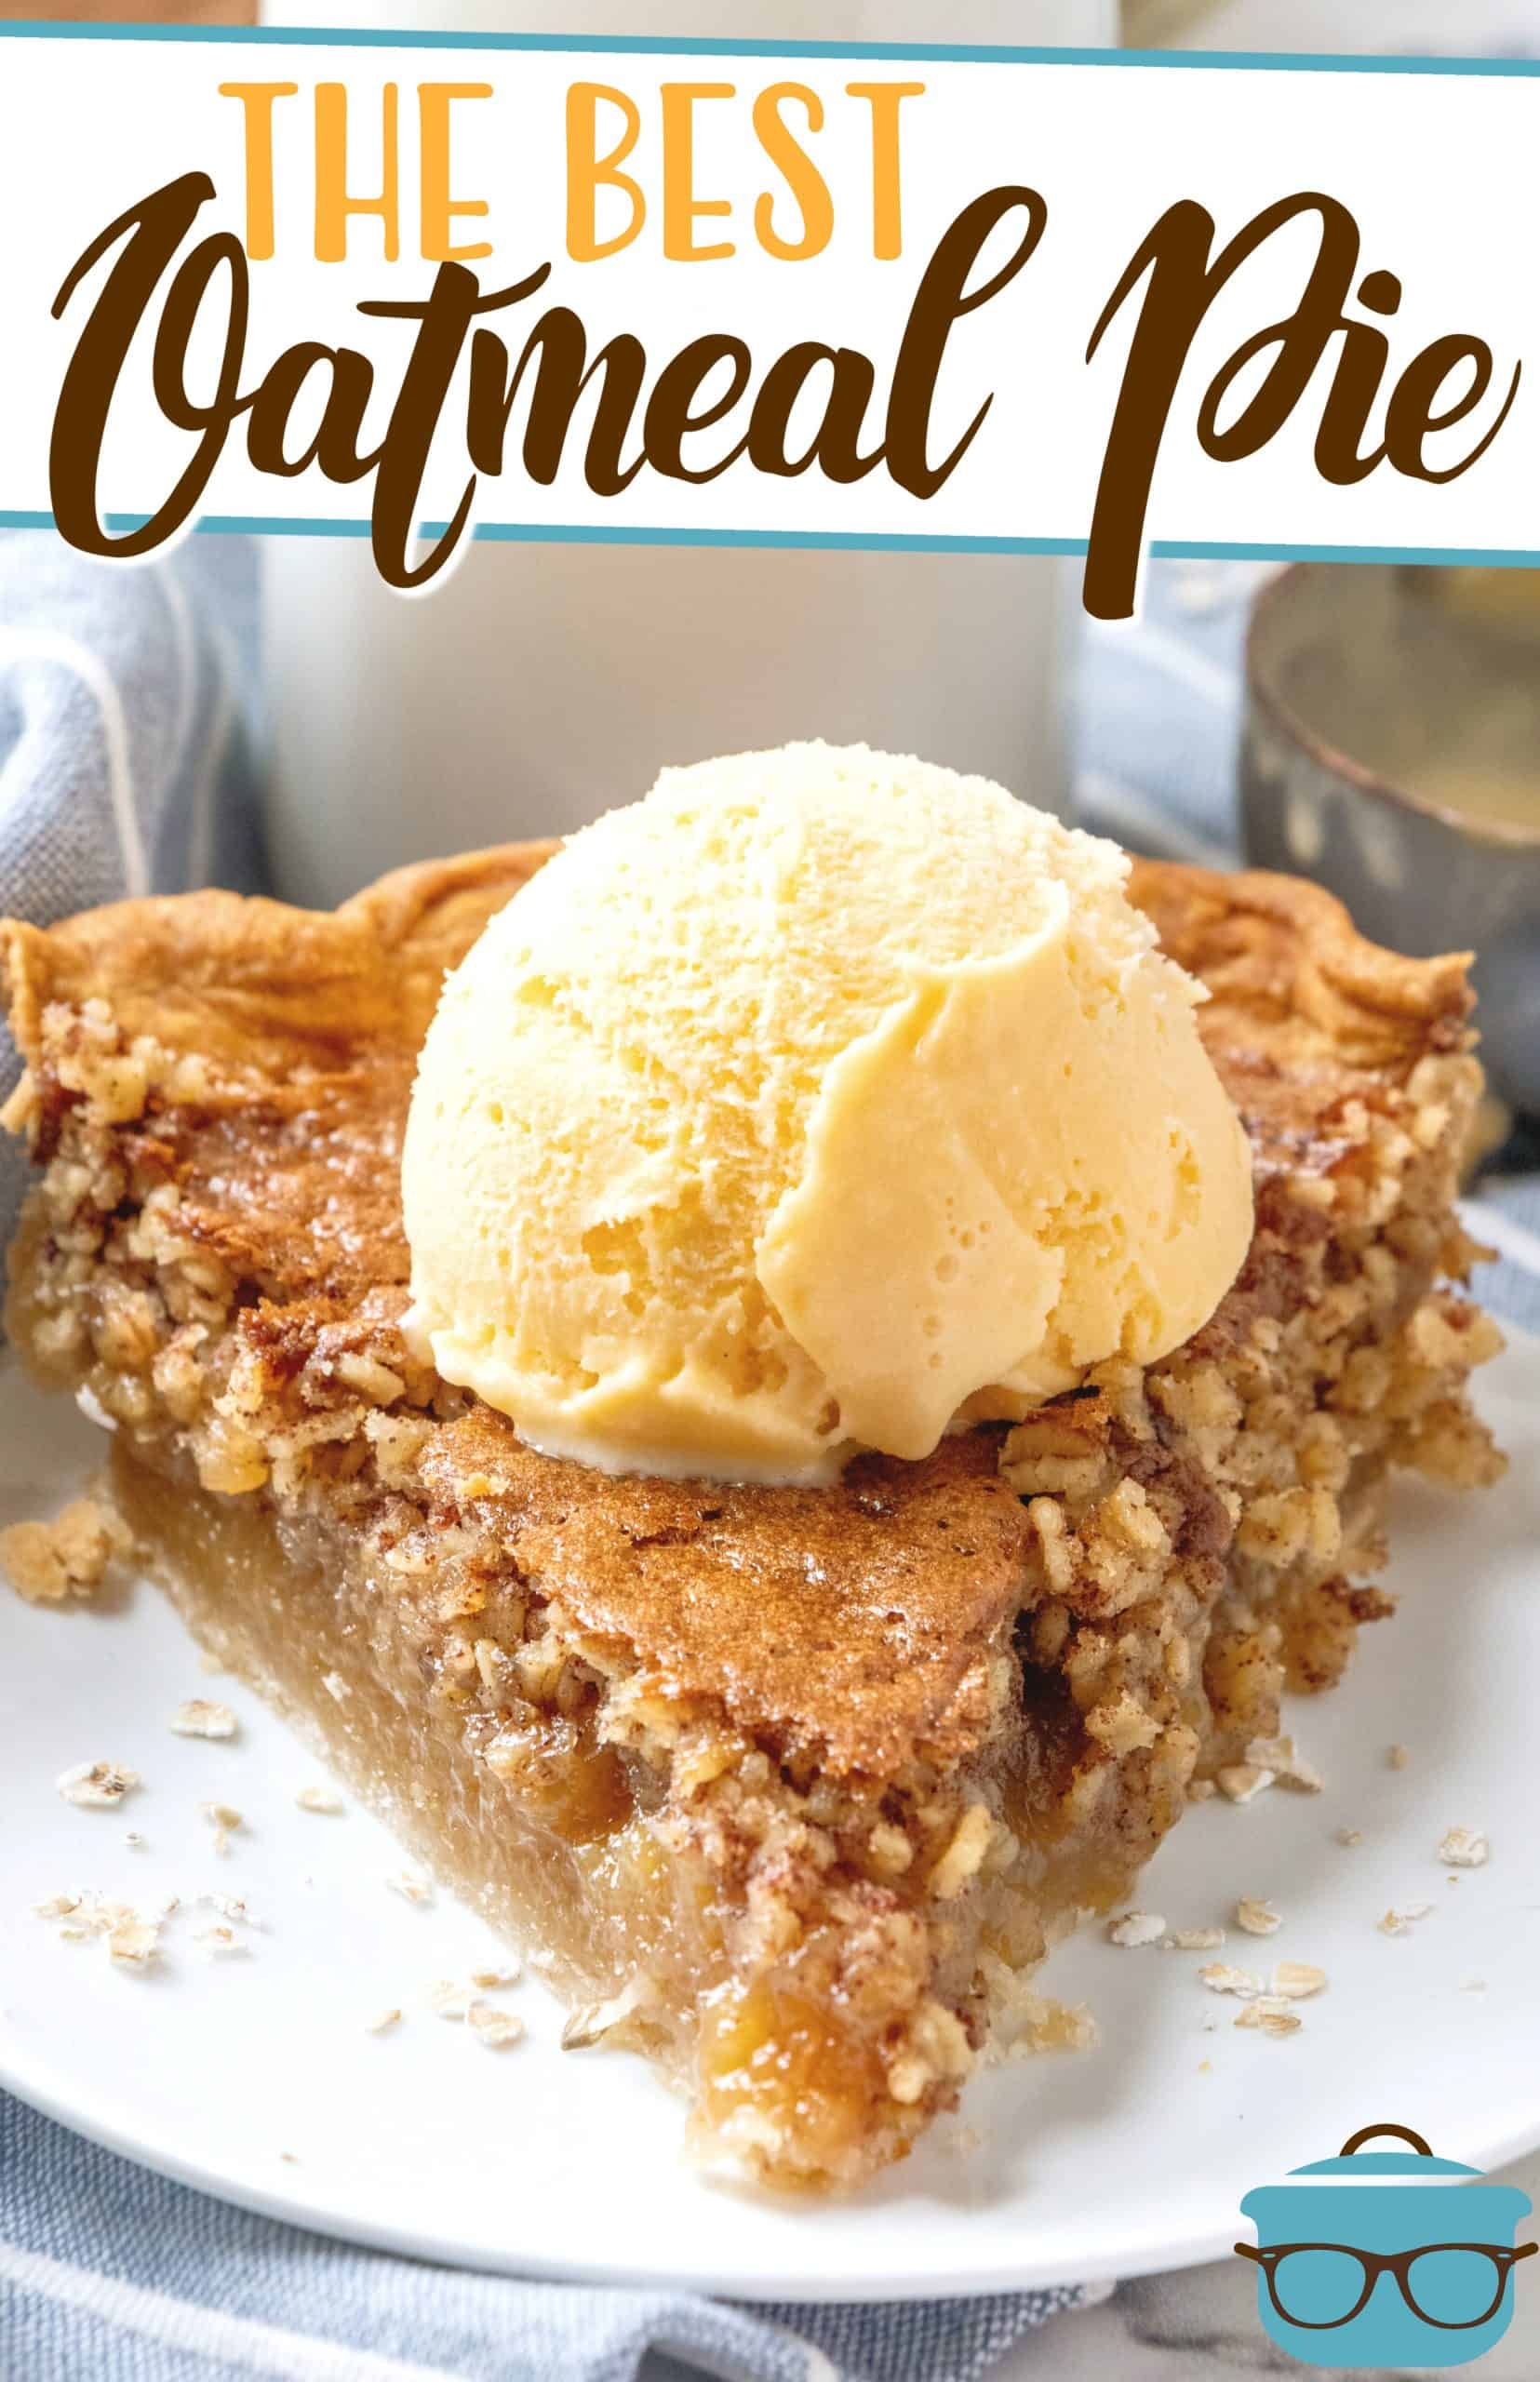 This recipe for the Best Oatmeal Pie is Grandma's prized blue ribbon winning recipe. Like a pecan pie but with oatmeal!